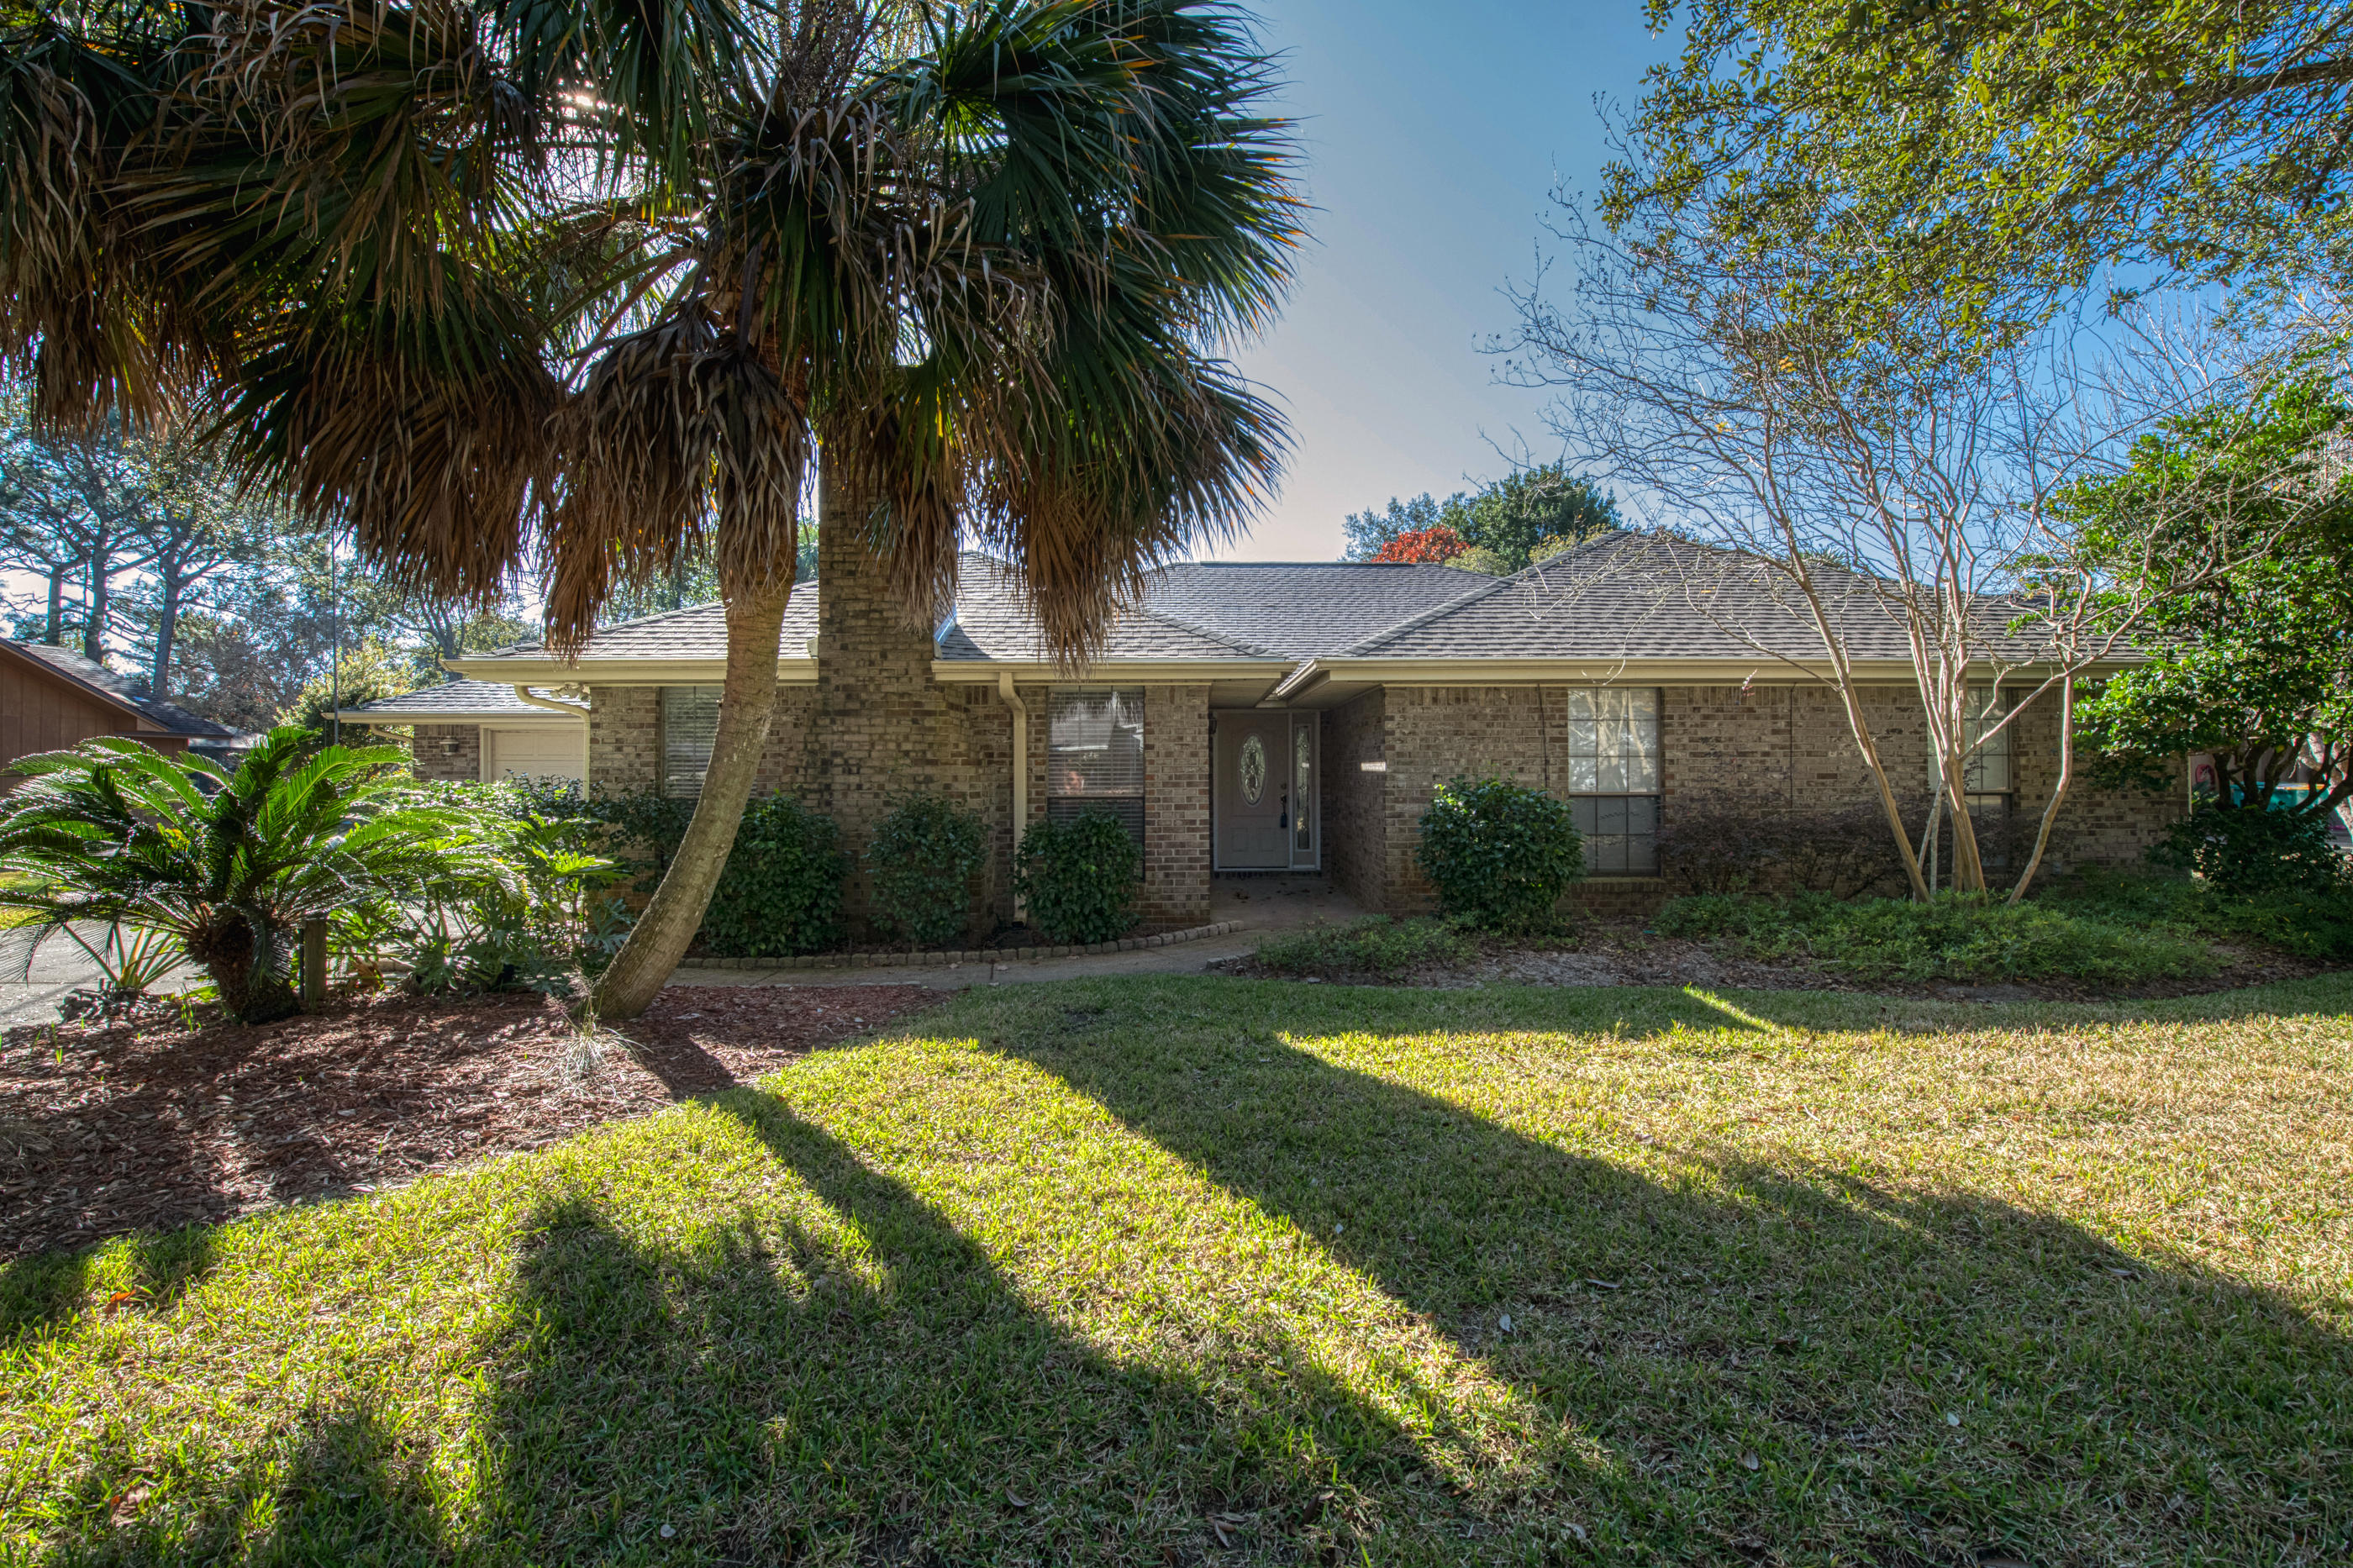 A 3 Bedroom 2 Bedroom Raintree Estates Home